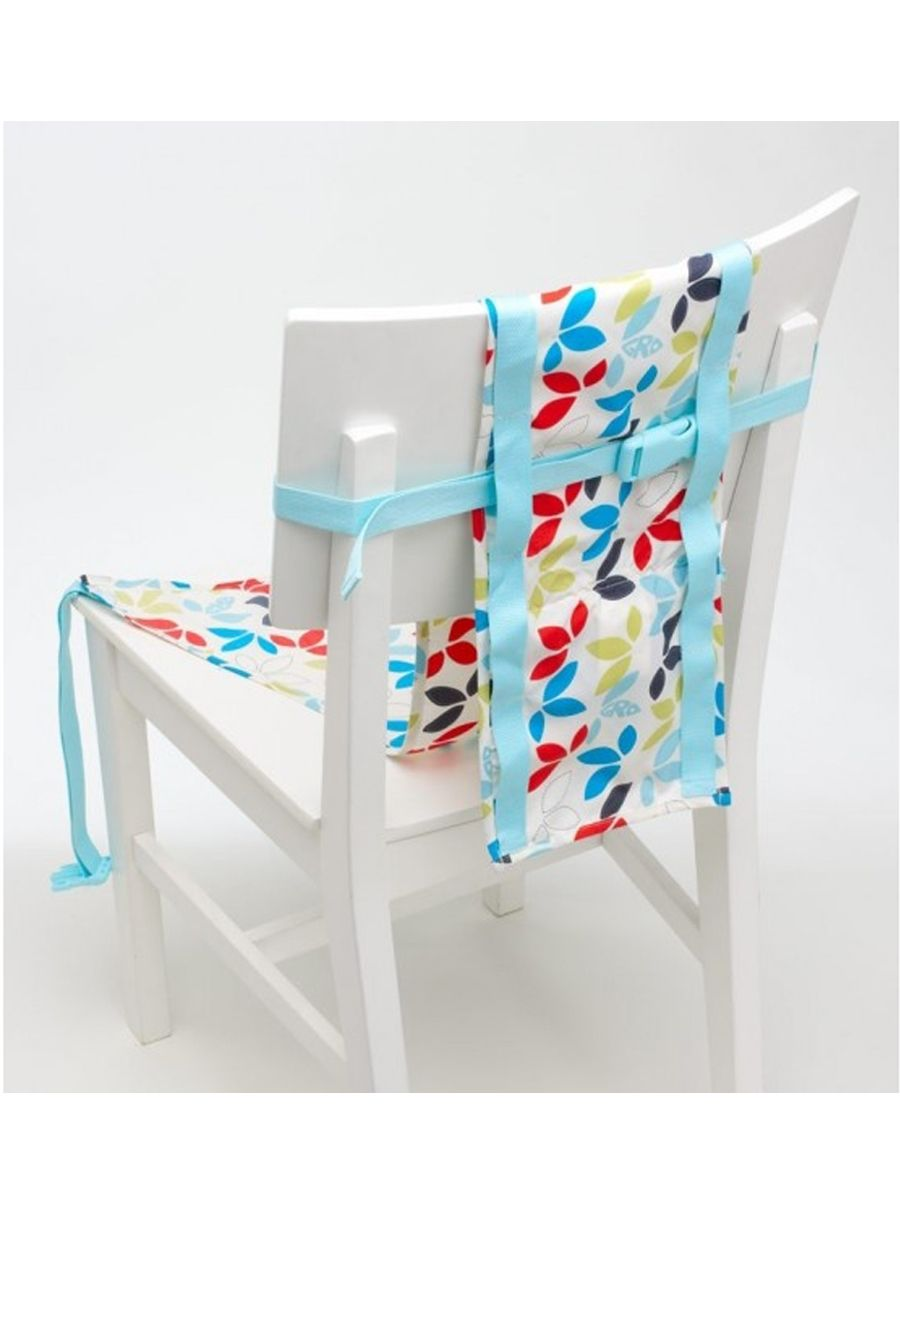 DIY Portable cloth seat to tie on adult chair for baby! | Sewing for ...